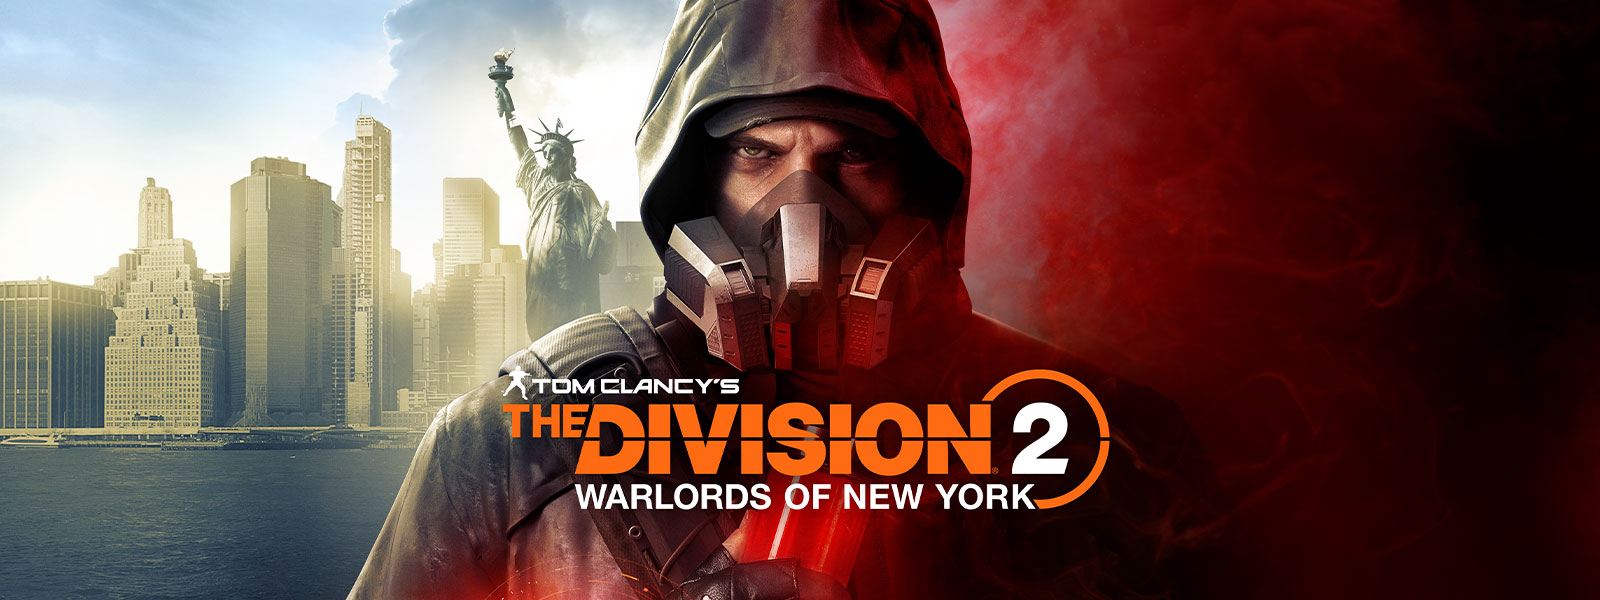 Tom Clancy's The Division 2 Warlords of New York, Aaron Keener con una máscara de gas, parado delante de la Estatua de la Libertad